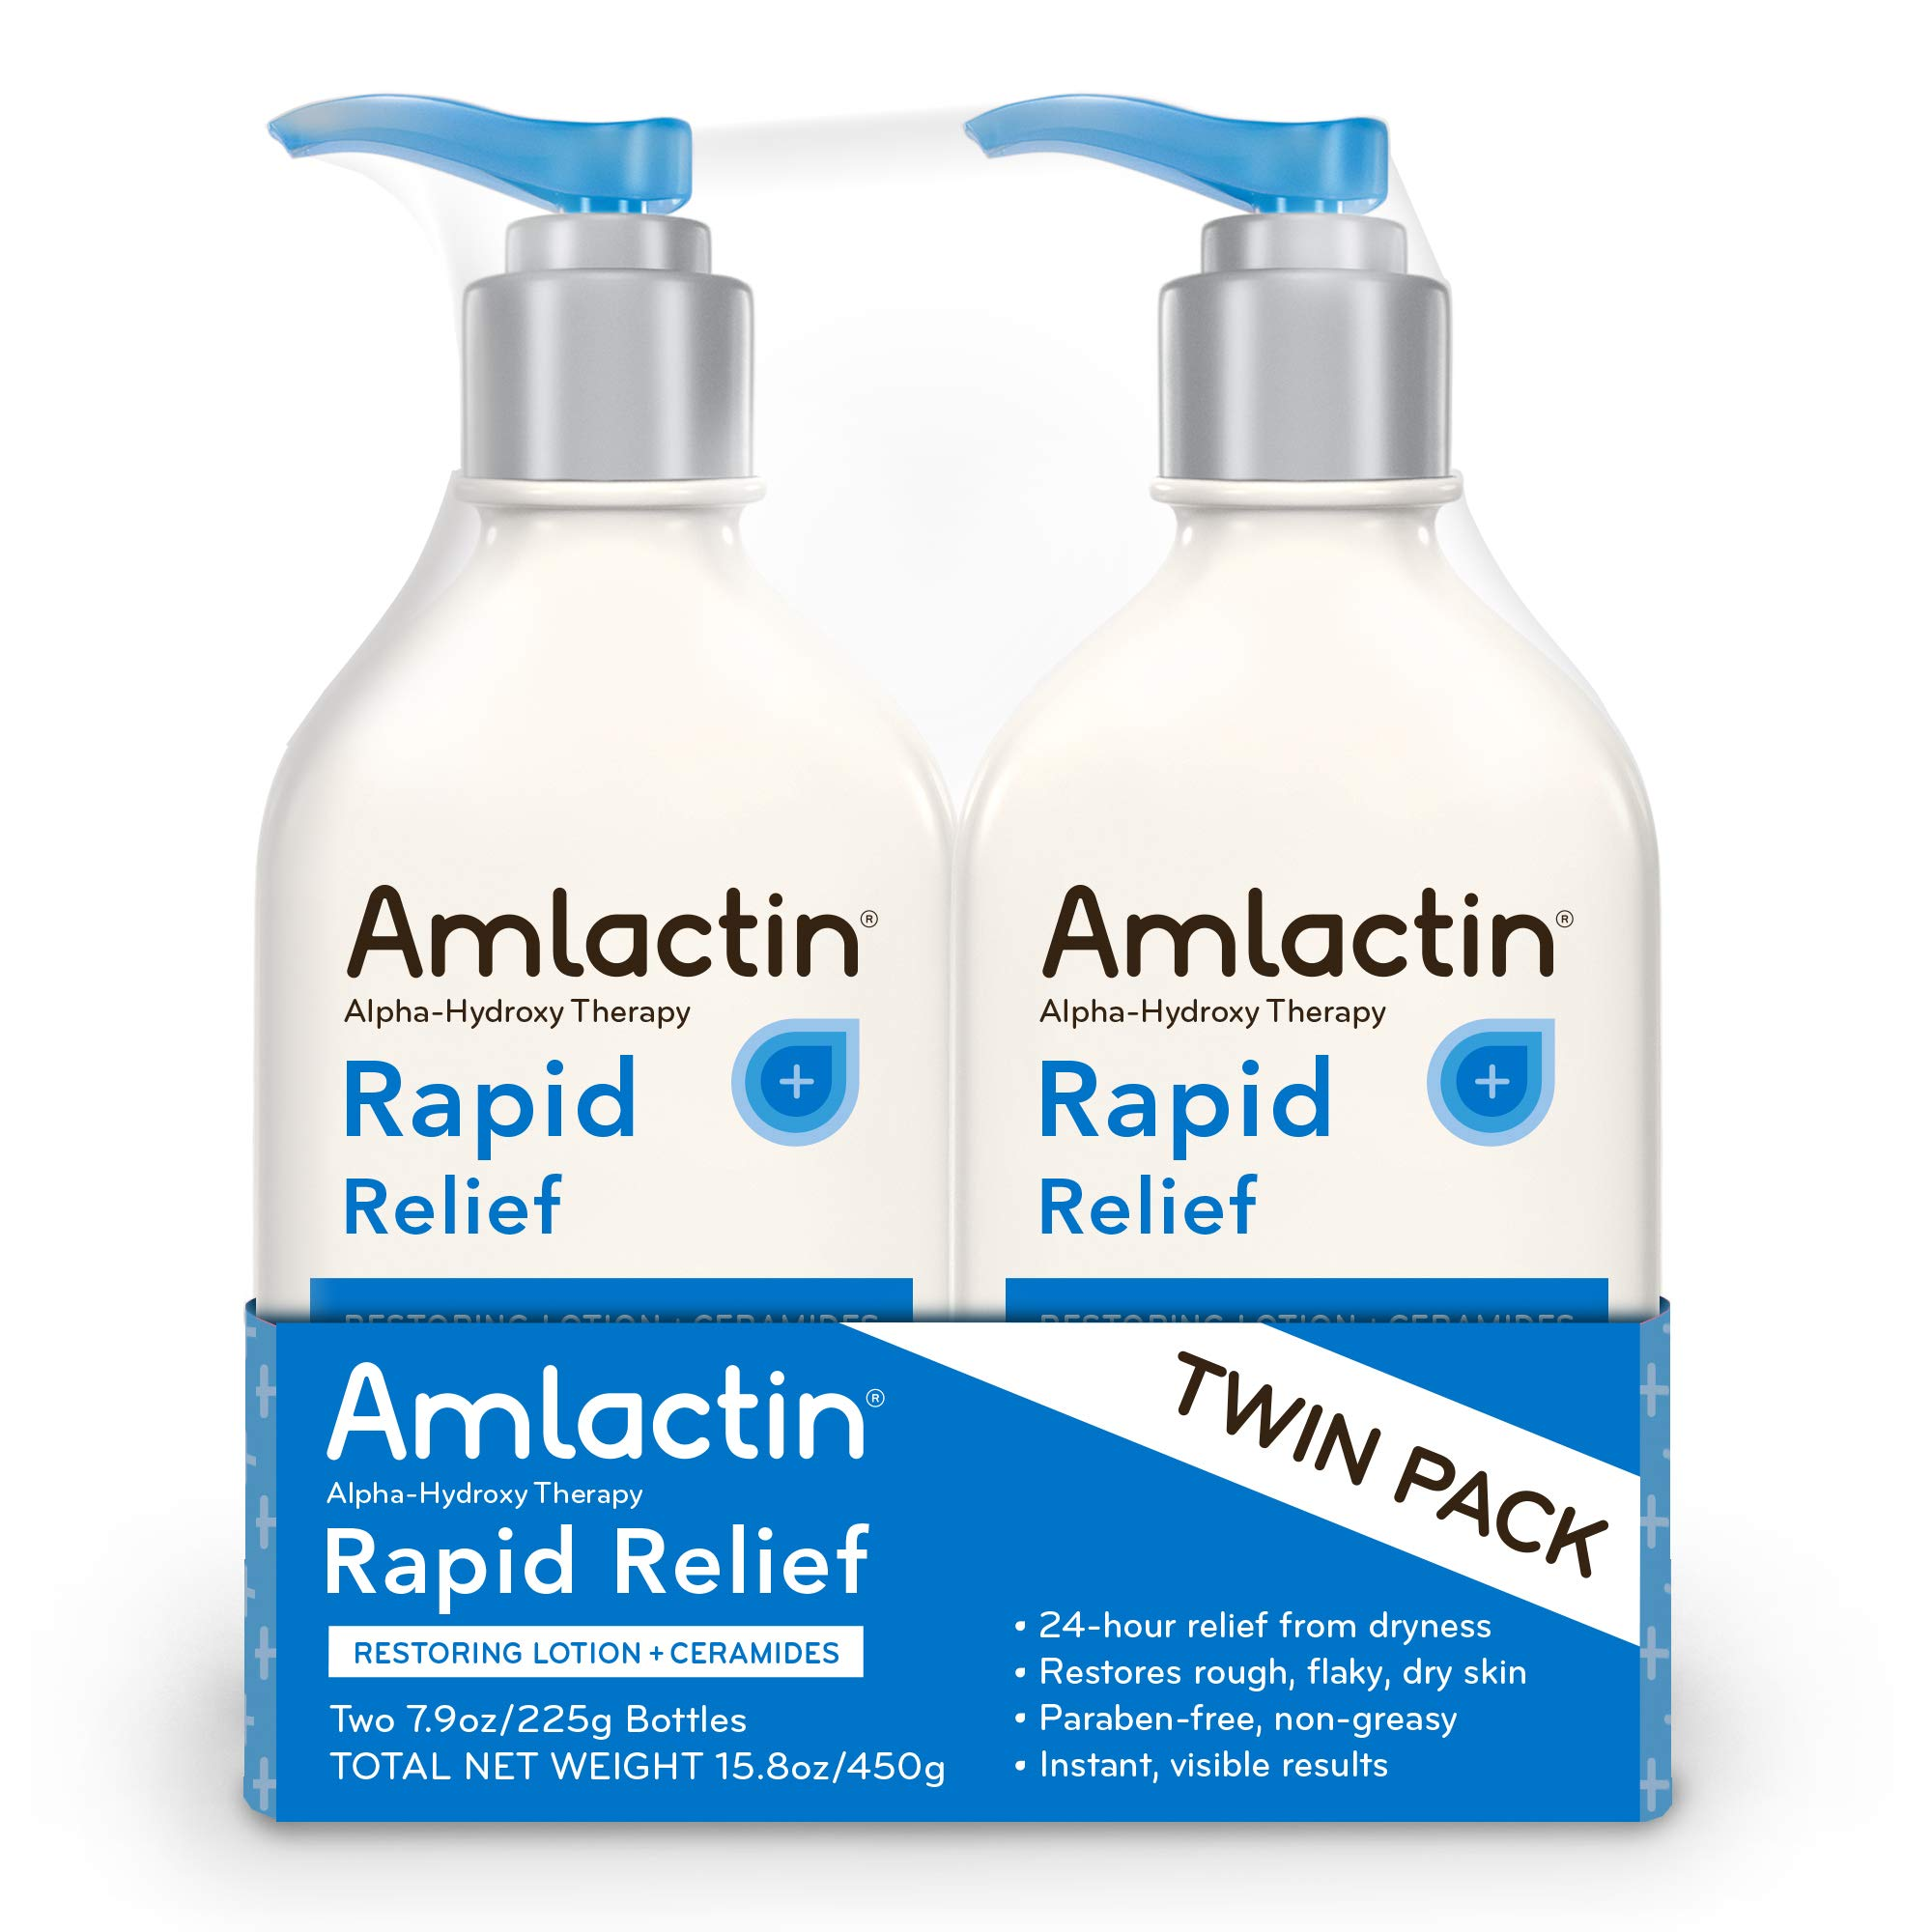 AmLactin Rapid Relief Restoring Lotion + Ceramides | 24-Hr Dryness Relief | Powerful Alpha-Hydroxy Therapy Gently Exfoliates | Lactic Acid (AHA) | Rough Flaky Dry Skin | Twin Pack (2) 7.9 oz. Bottles